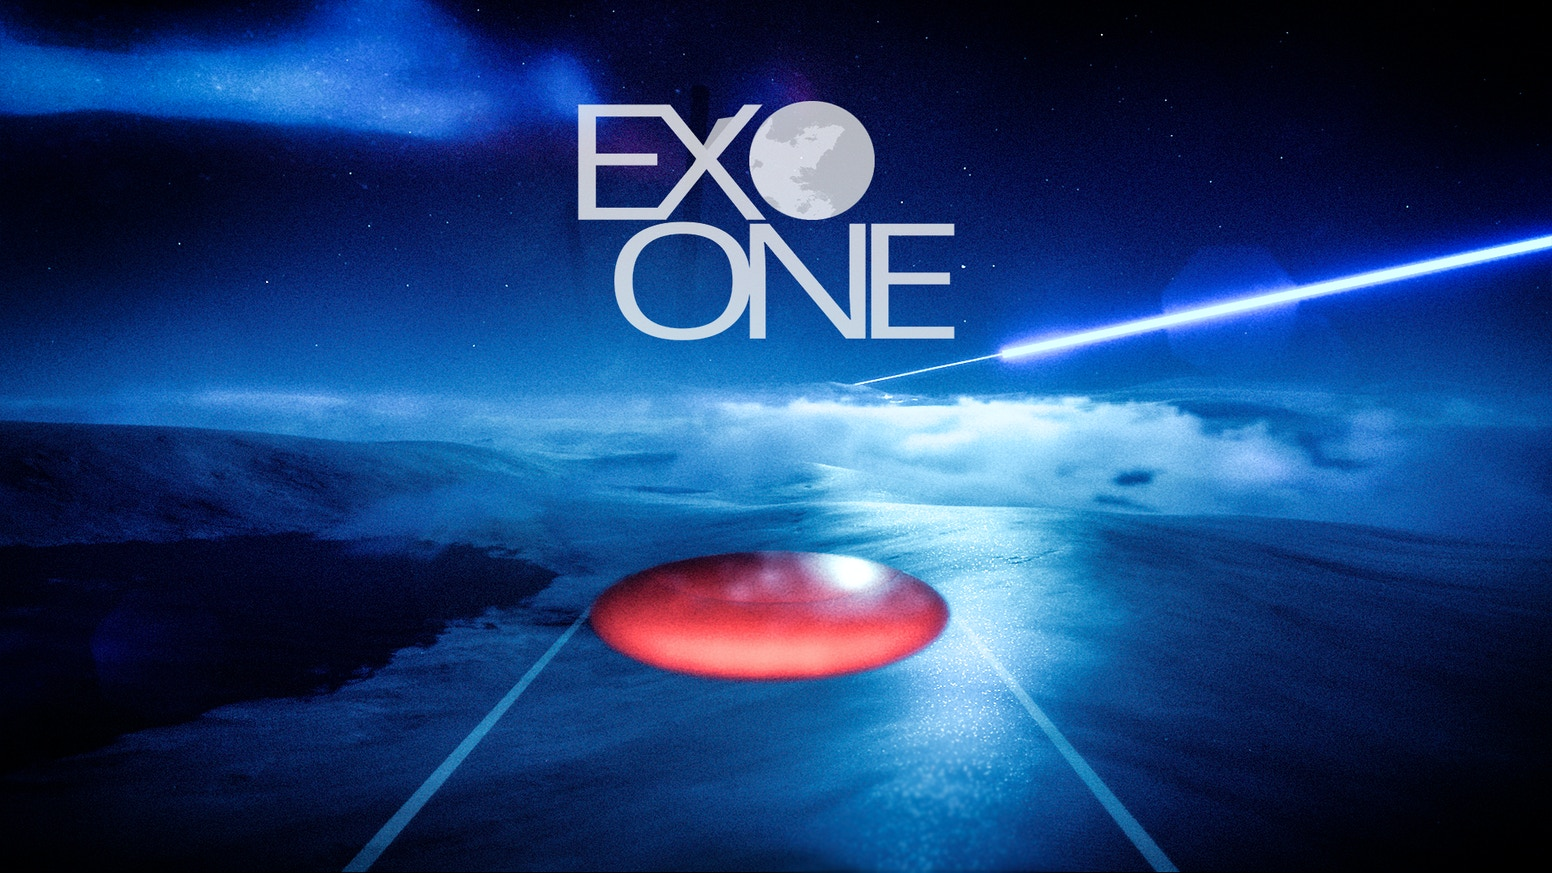 A surreal exoplanetary exploration game. Pilot an alien craft that can manipulate gravity on mankind's ill-fated First Contact mission.